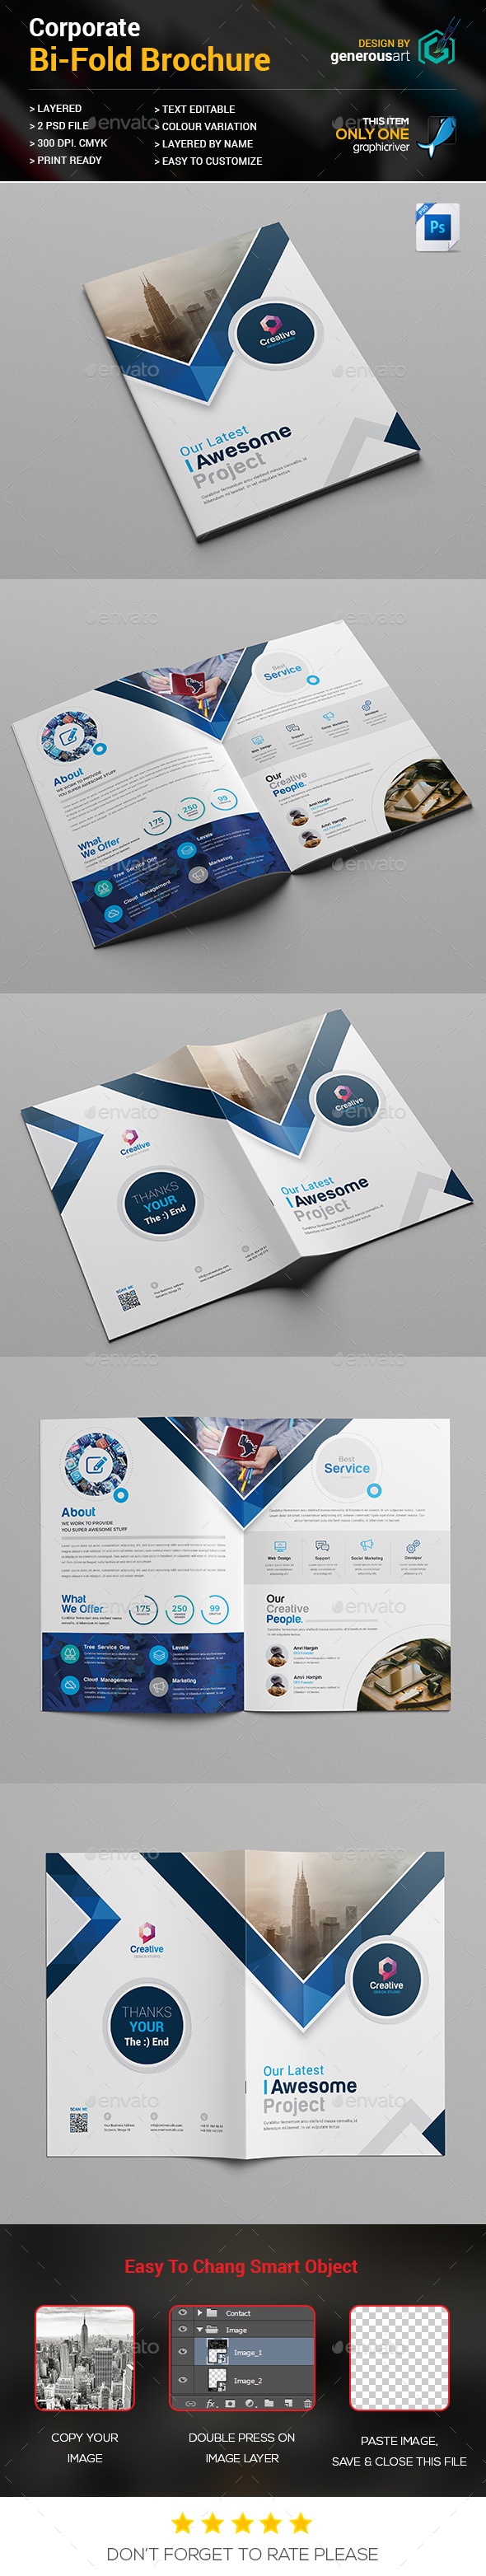 GraphicRiver Bi-fold Brochure 21004447